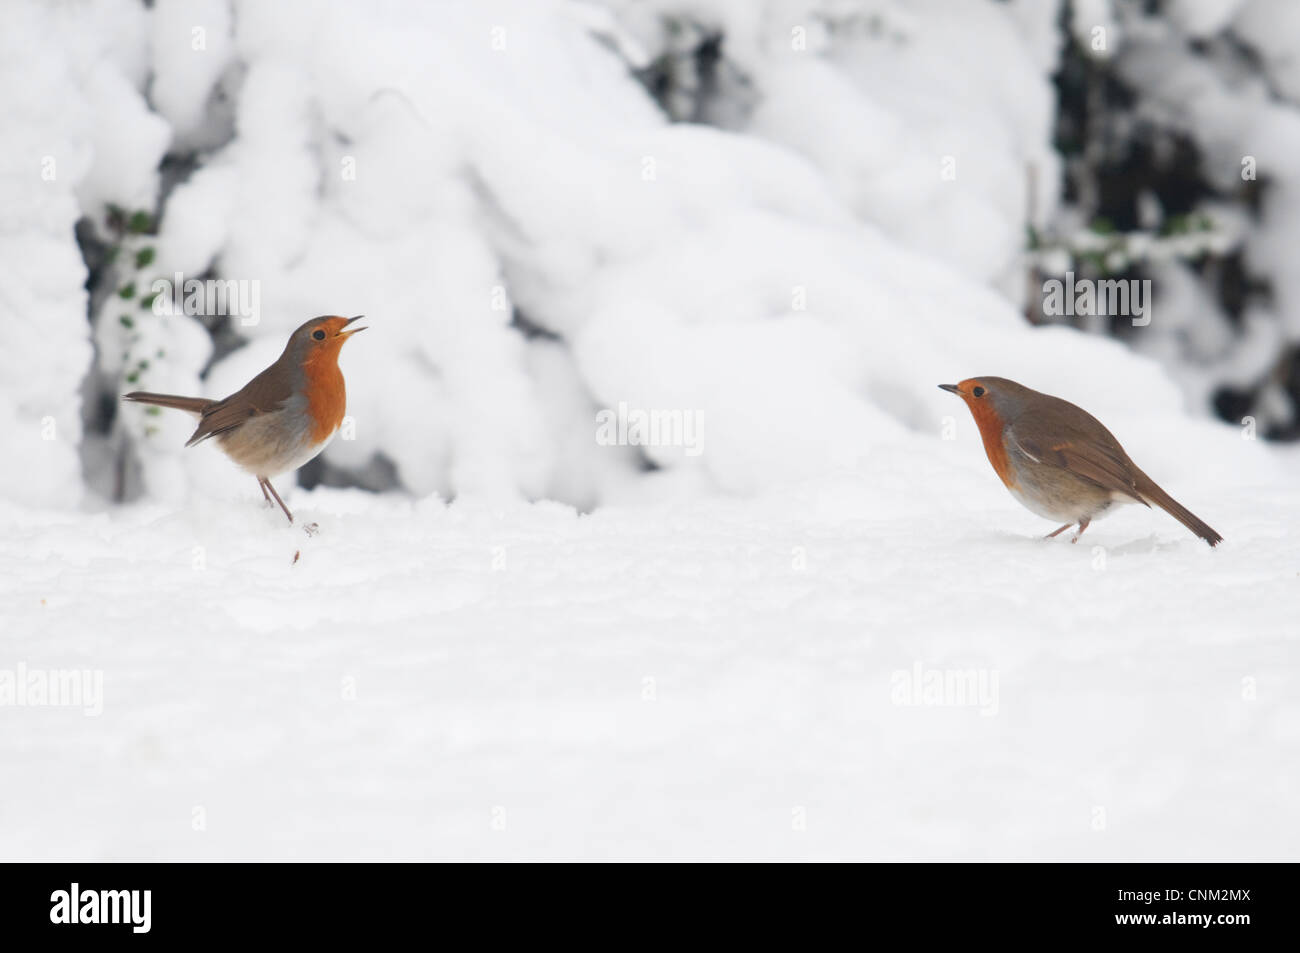 A pair of robins facing off, engaged in a territorial dispute in snowy weather. Hastings, Sussex, UK - Stock Image